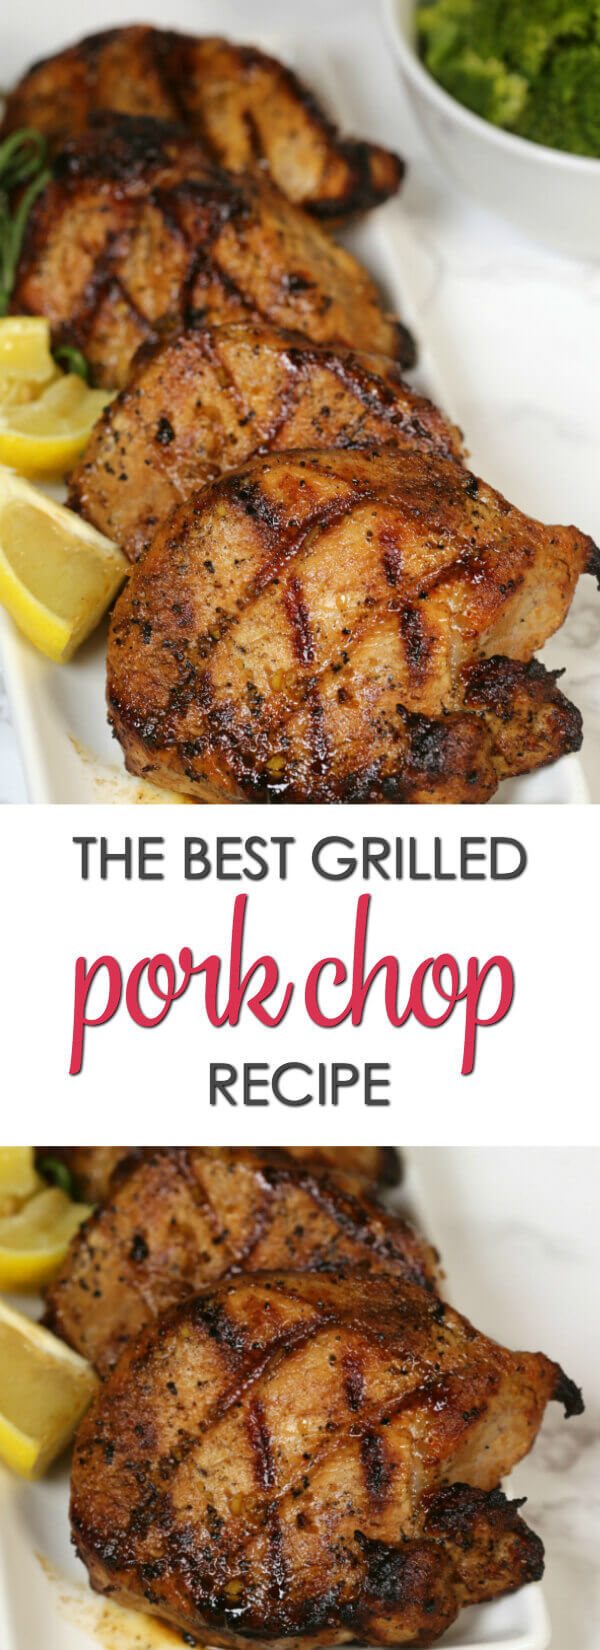 The best grilled pork chop marinade recipe on a white dish.